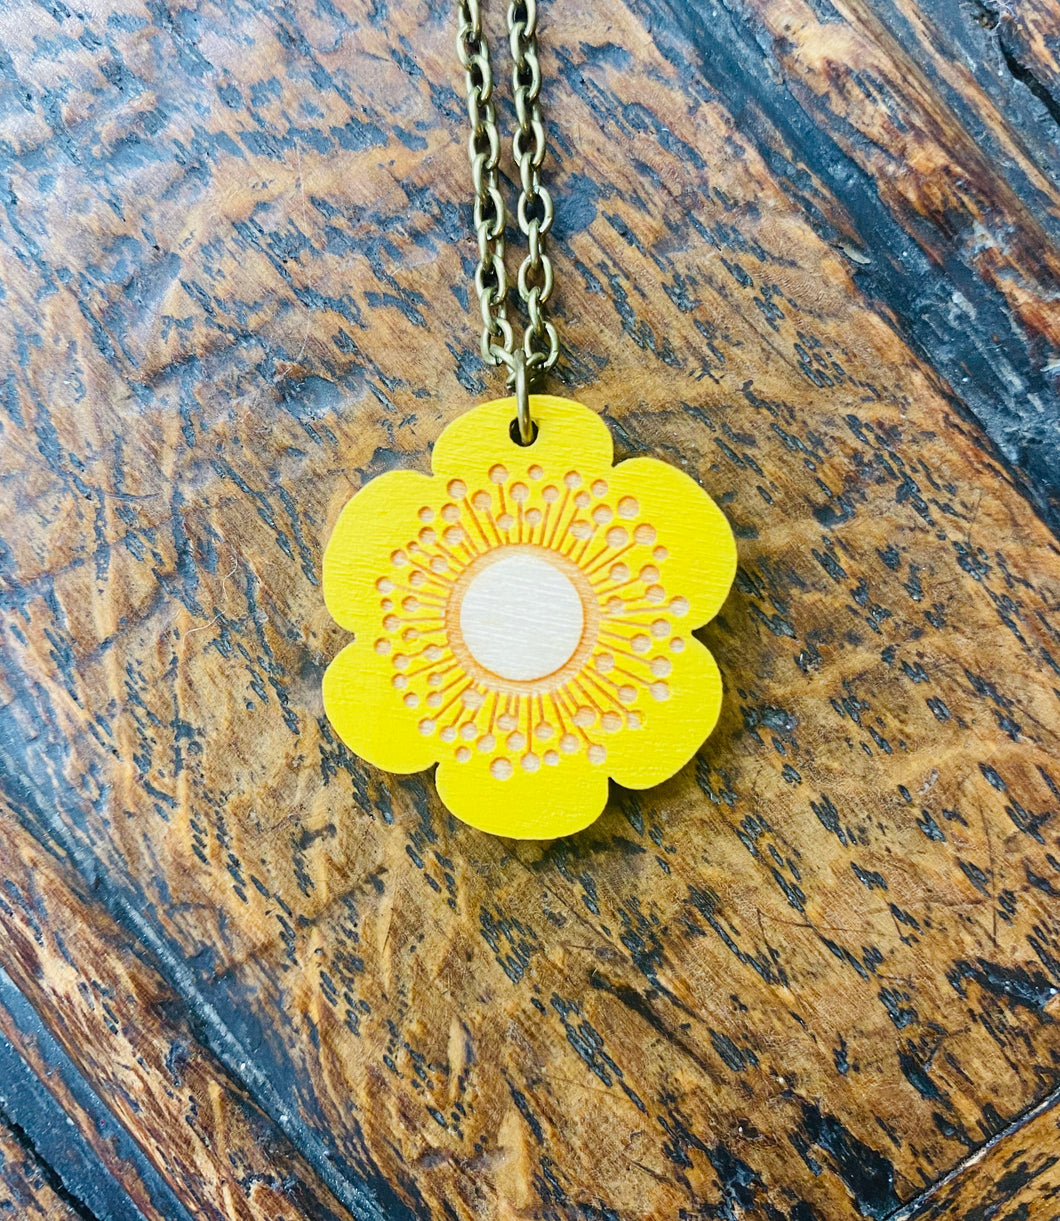 Mwclis Blodyn Melyn Layla Amber / Layla Amber's Yellow Flower Necklace